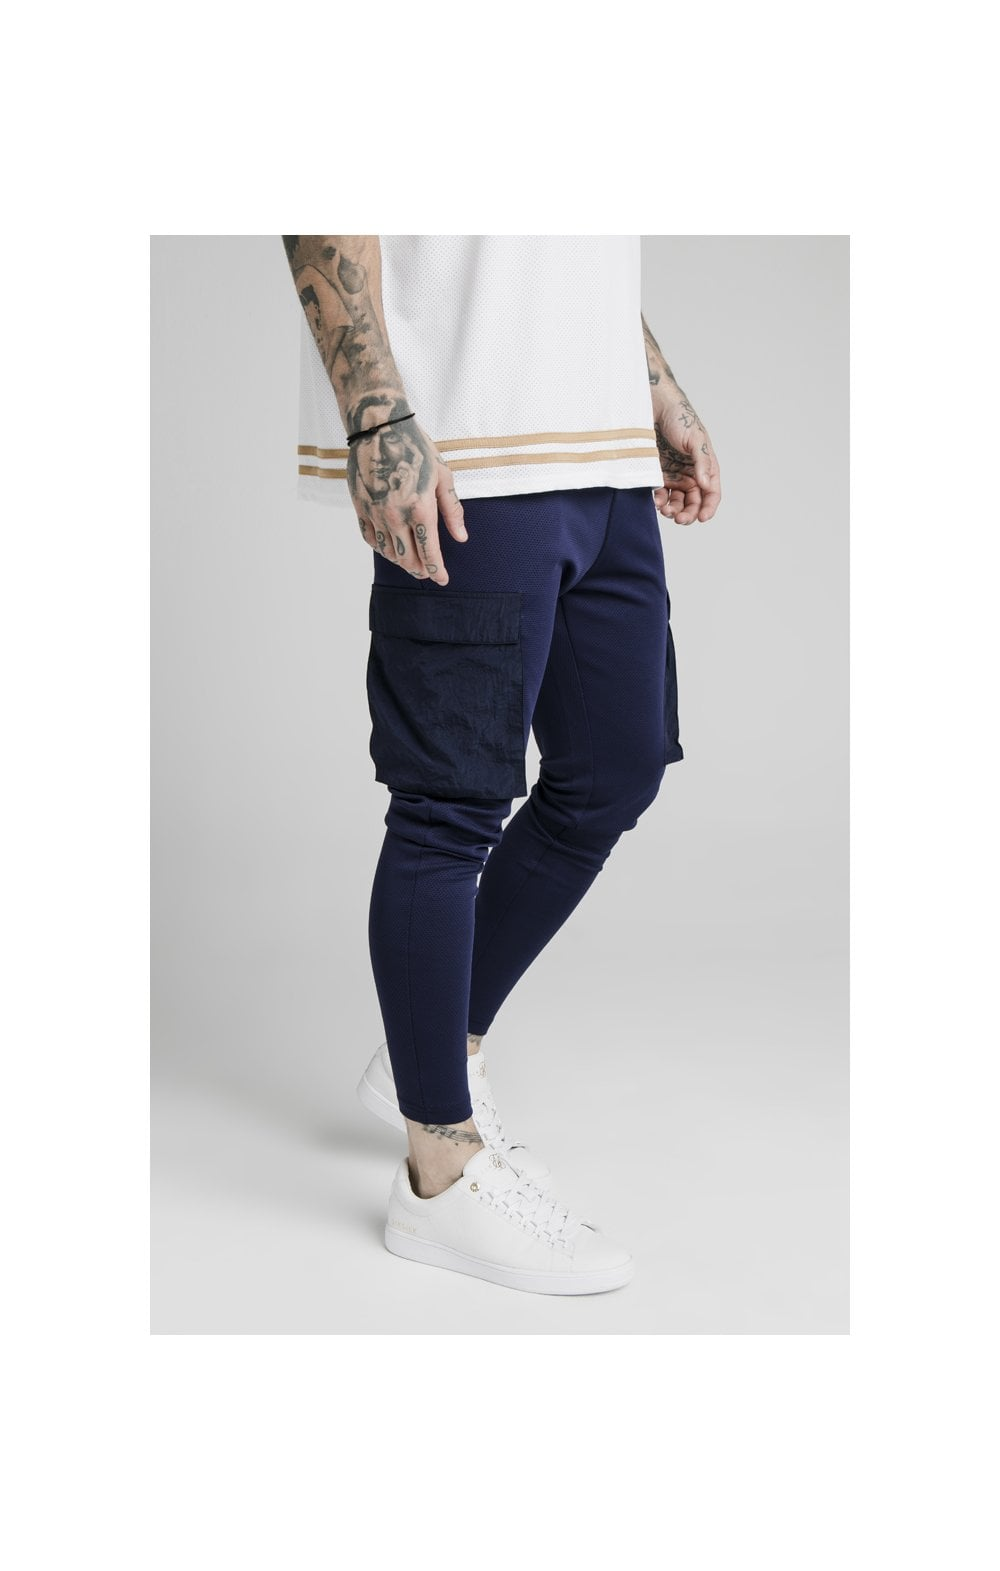 Load image into Gallery viewer, SikSilk Crushed Nylon Cargo Pants - Navy (2)